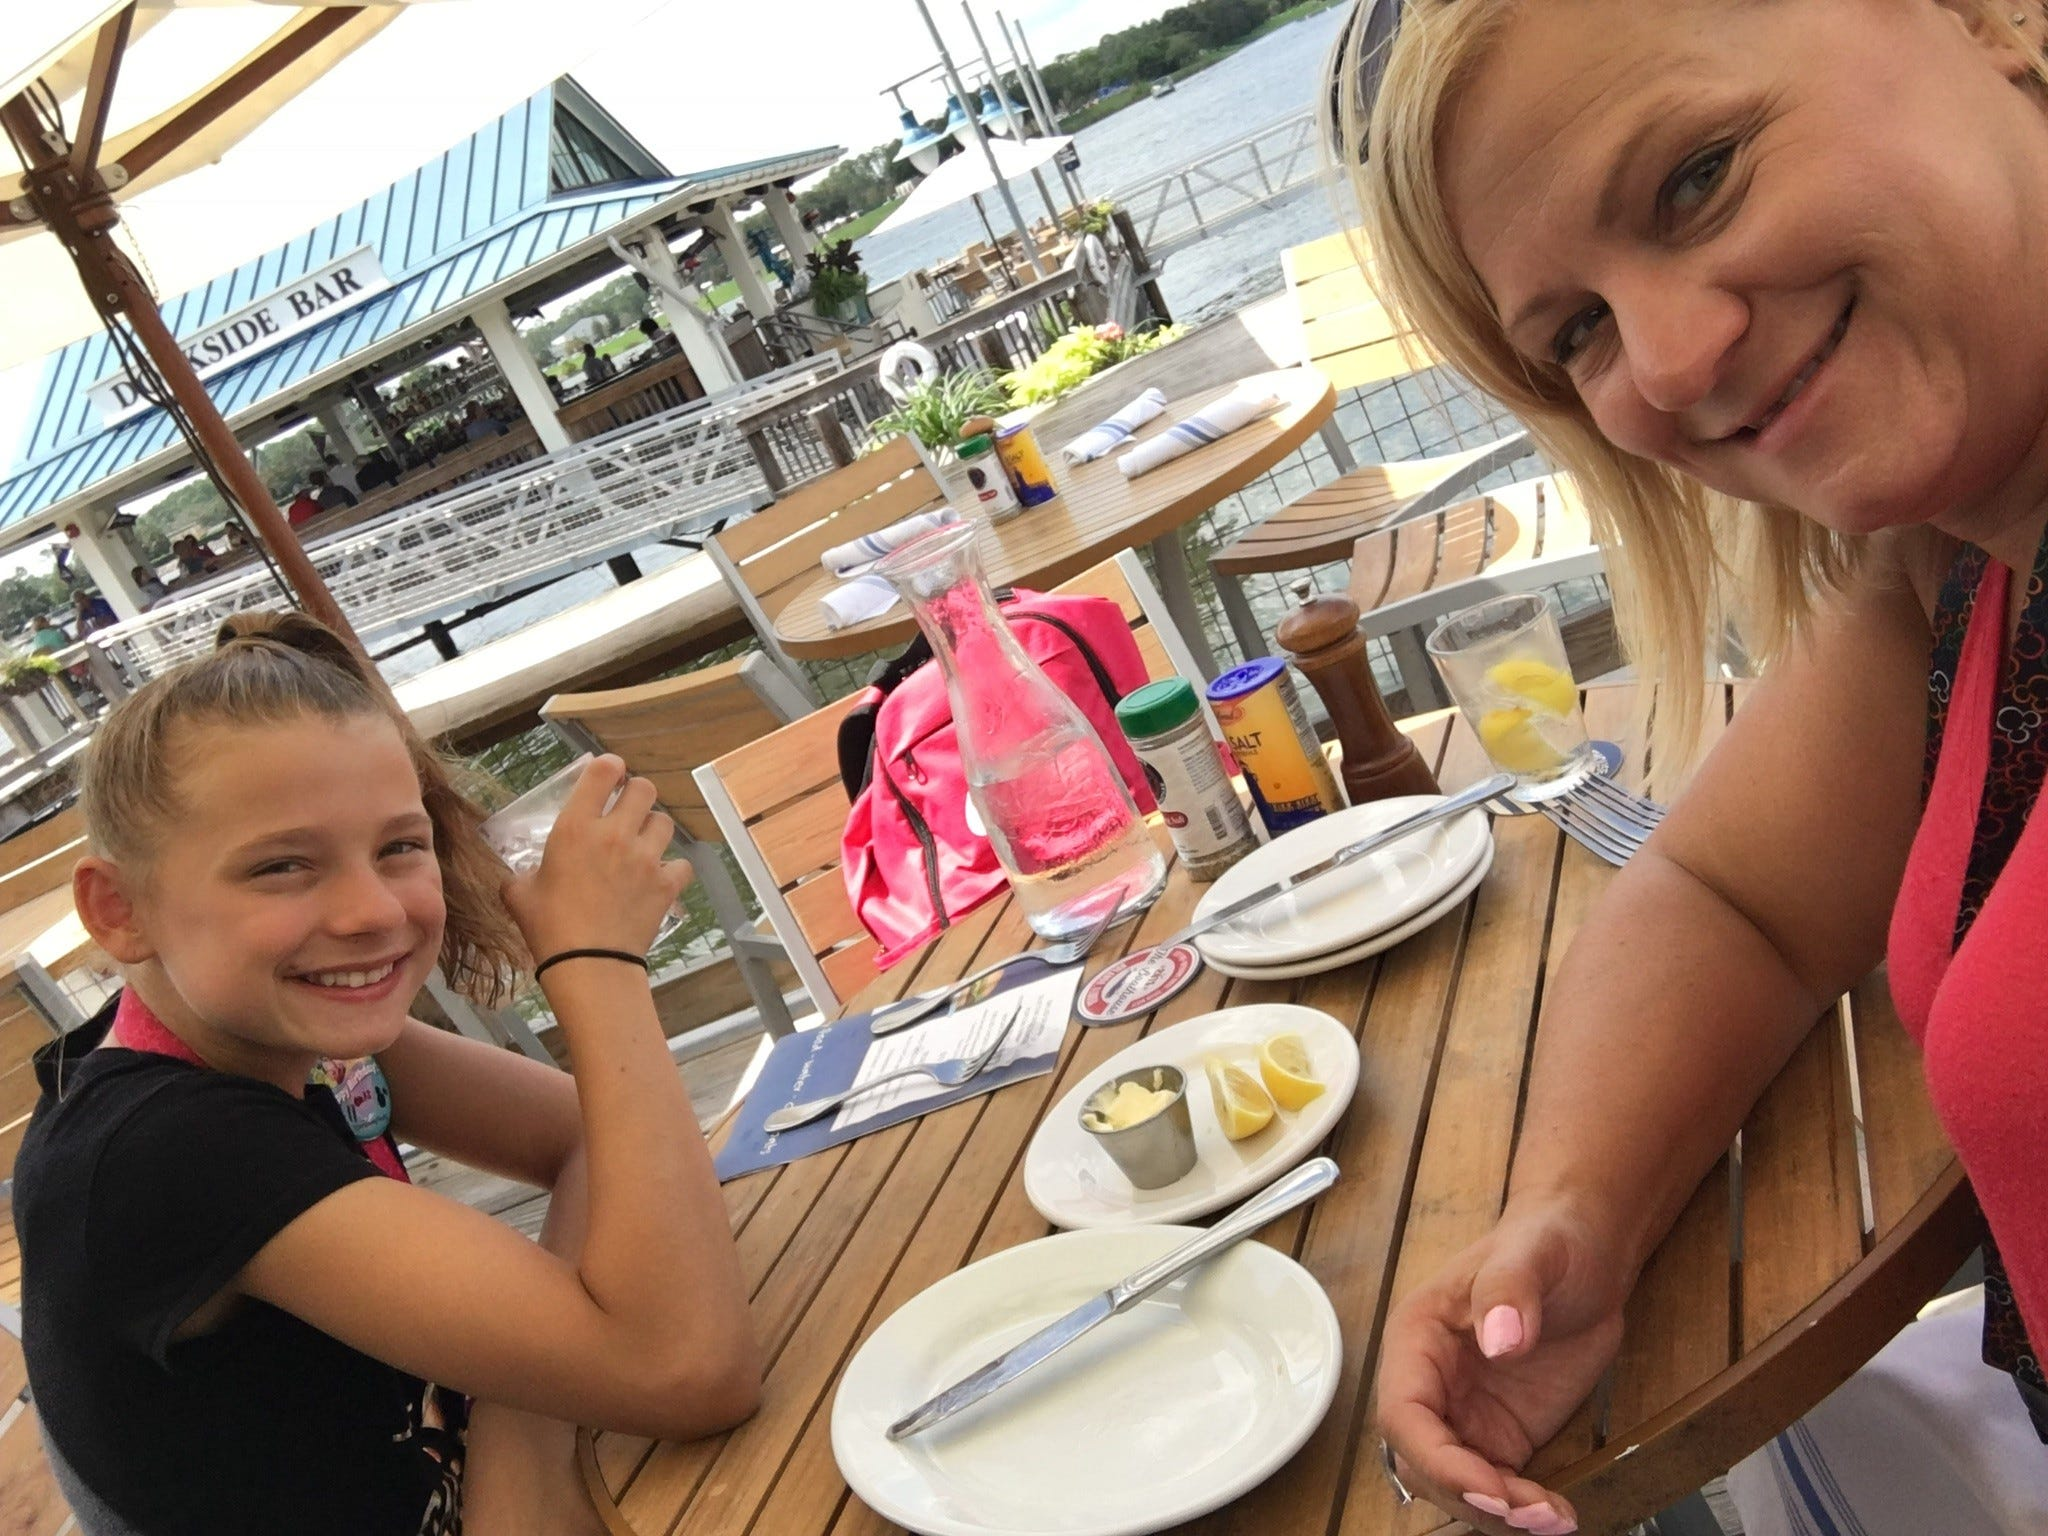 Paula Sonsalla Bisek on vacation with her daughter. She says she is shopping less these days and spending more time showing her daughter that life isn't about the things one buys but more so who someone is.